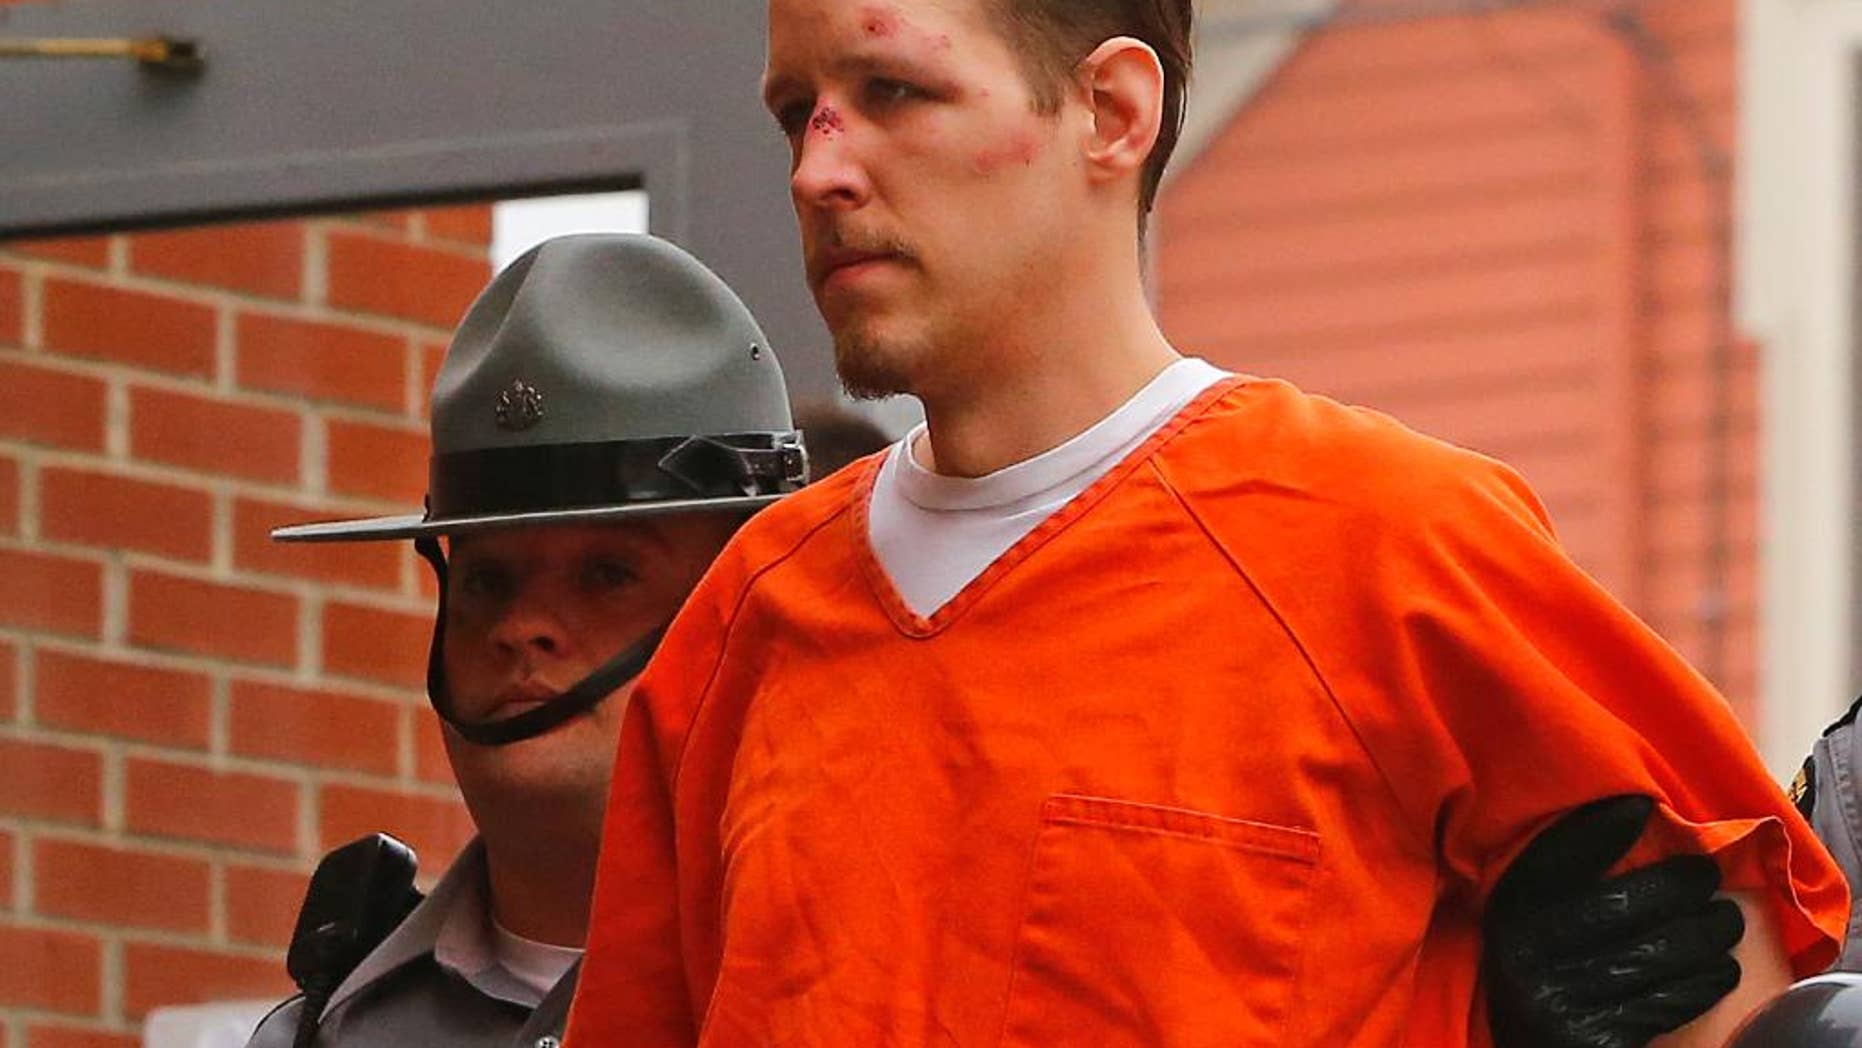 Eric Frein is escorted by police into the Pike County Courthouse for his arraignment in Milford, Pa., Friday Oct. 31, 2014. Frein, was captured seven weeks after police say he killed a Pennsylvania State trooper in an ambush outside a barracks in northeastern Pennsylvania. (AP Photo/Rich Schultz)